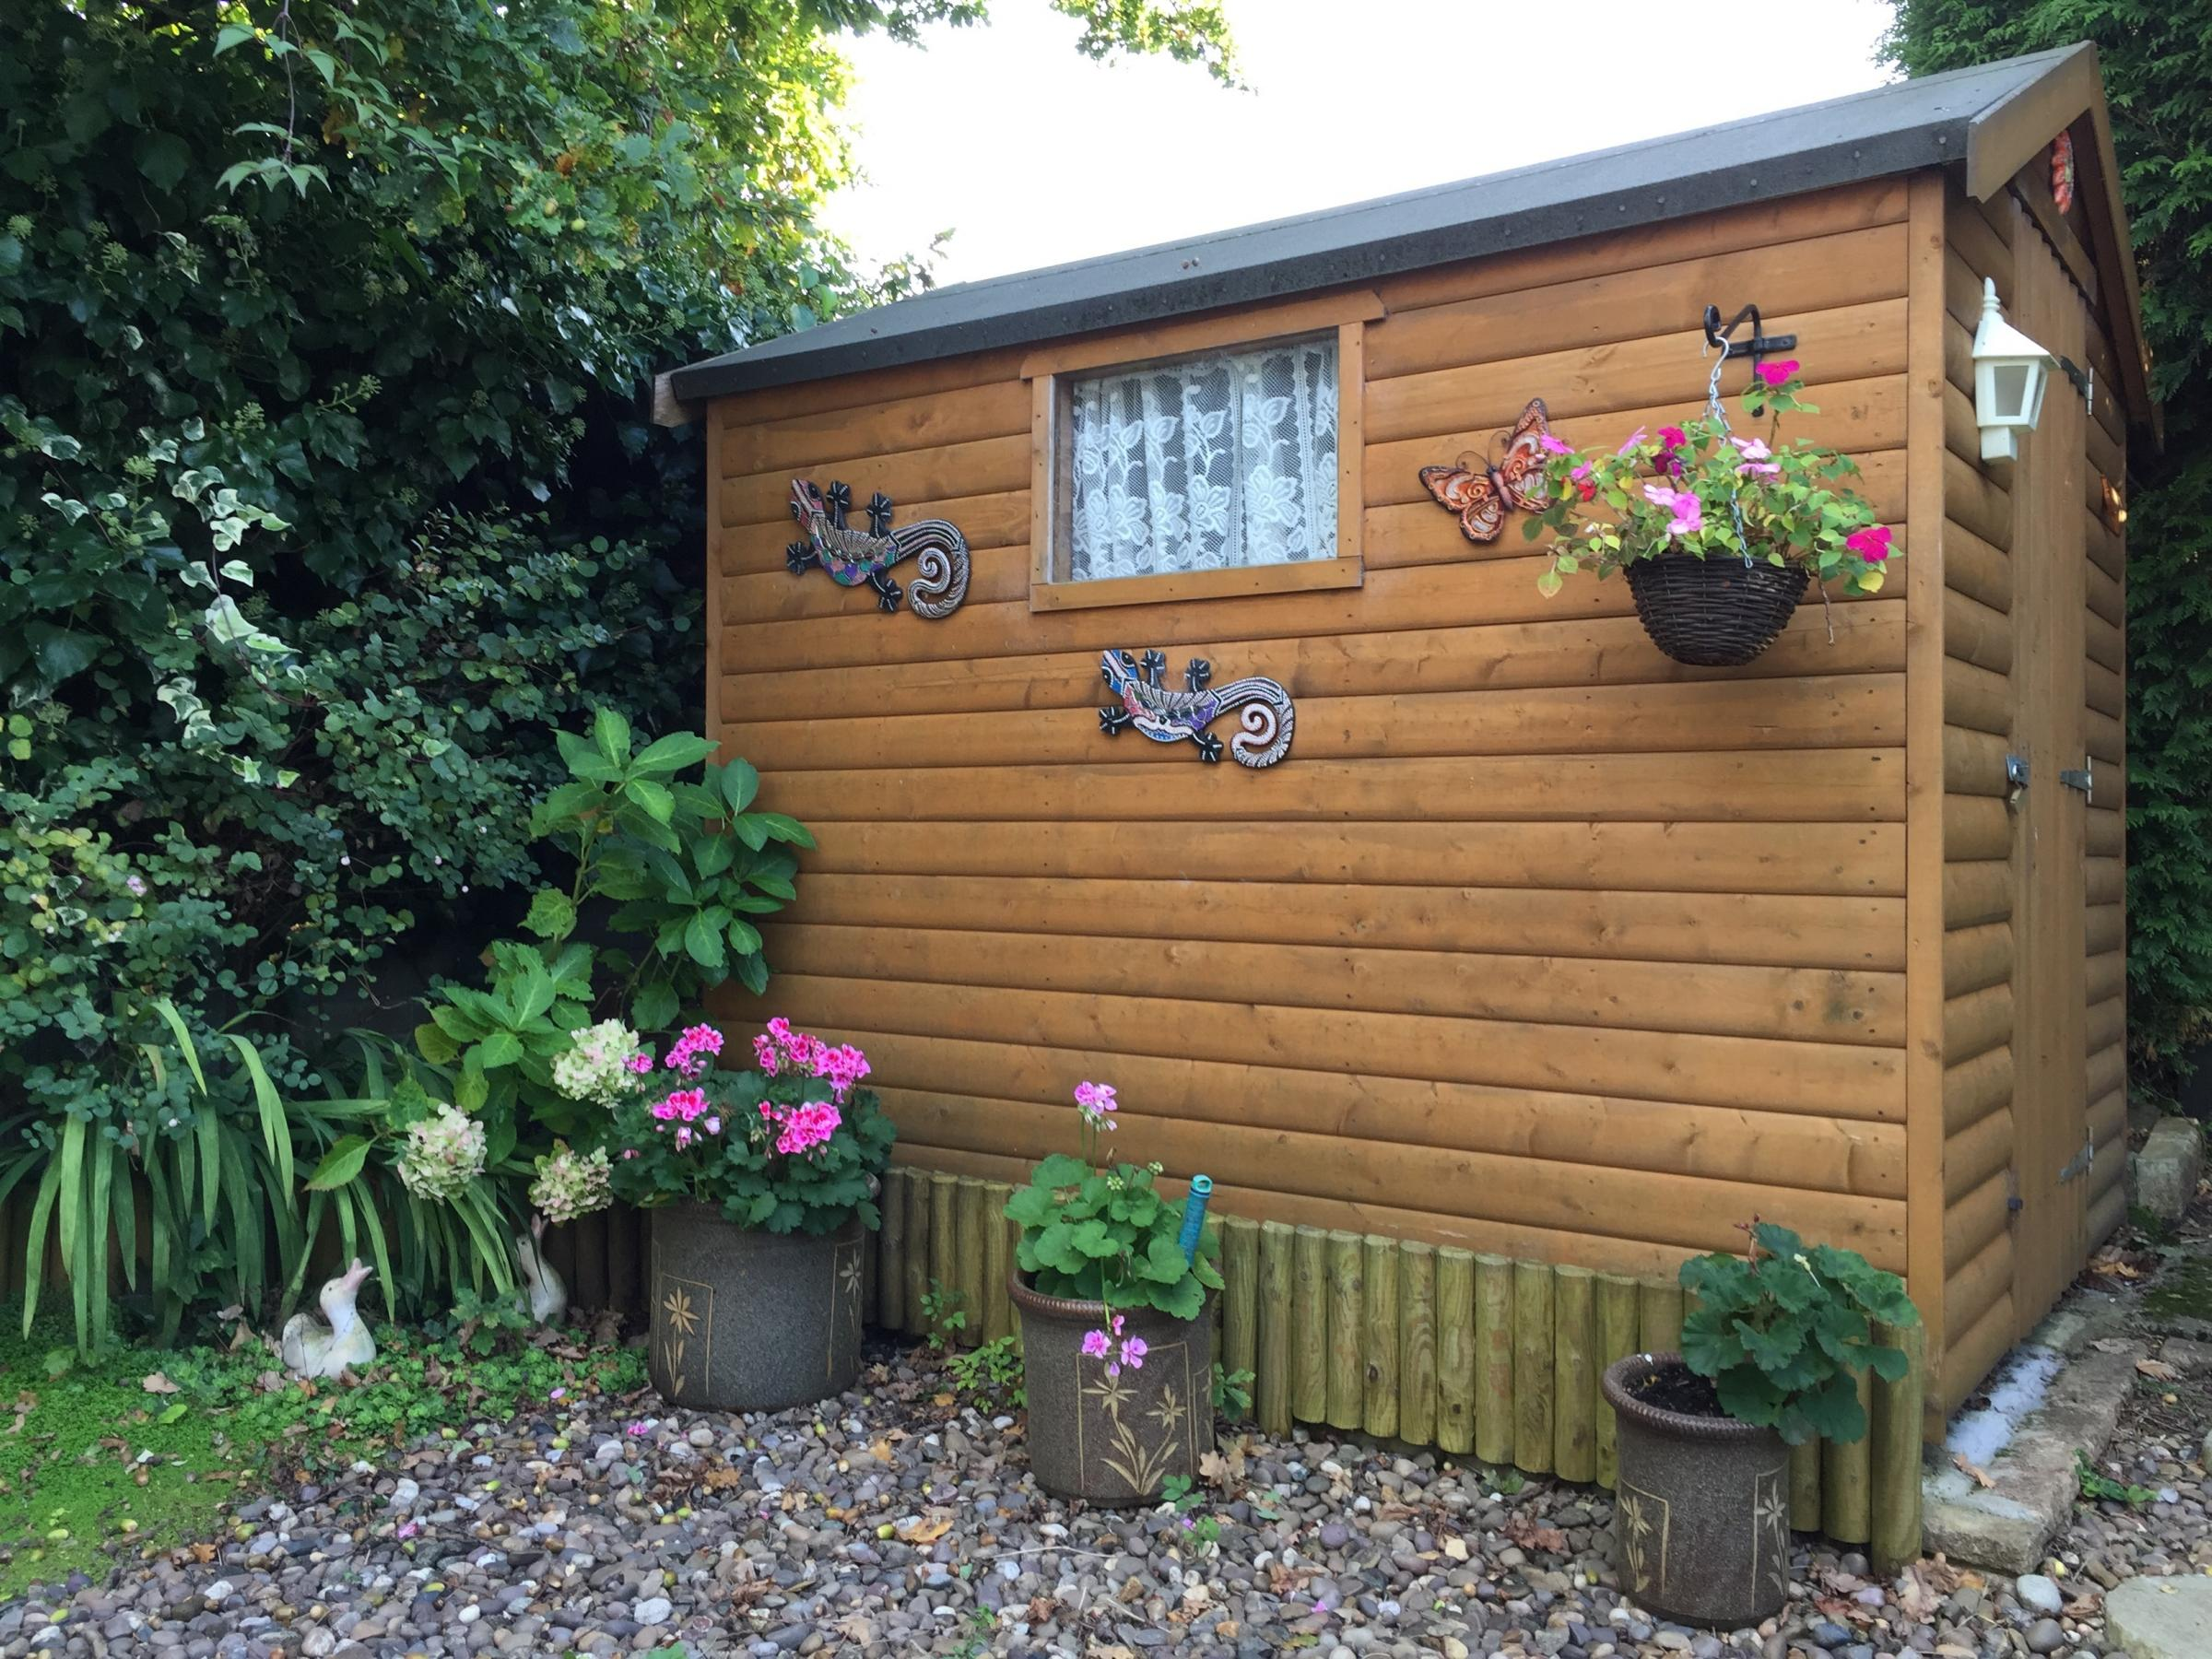 This week's shed comes from Cwmbran and has been sent in by Mrs Fletcher.